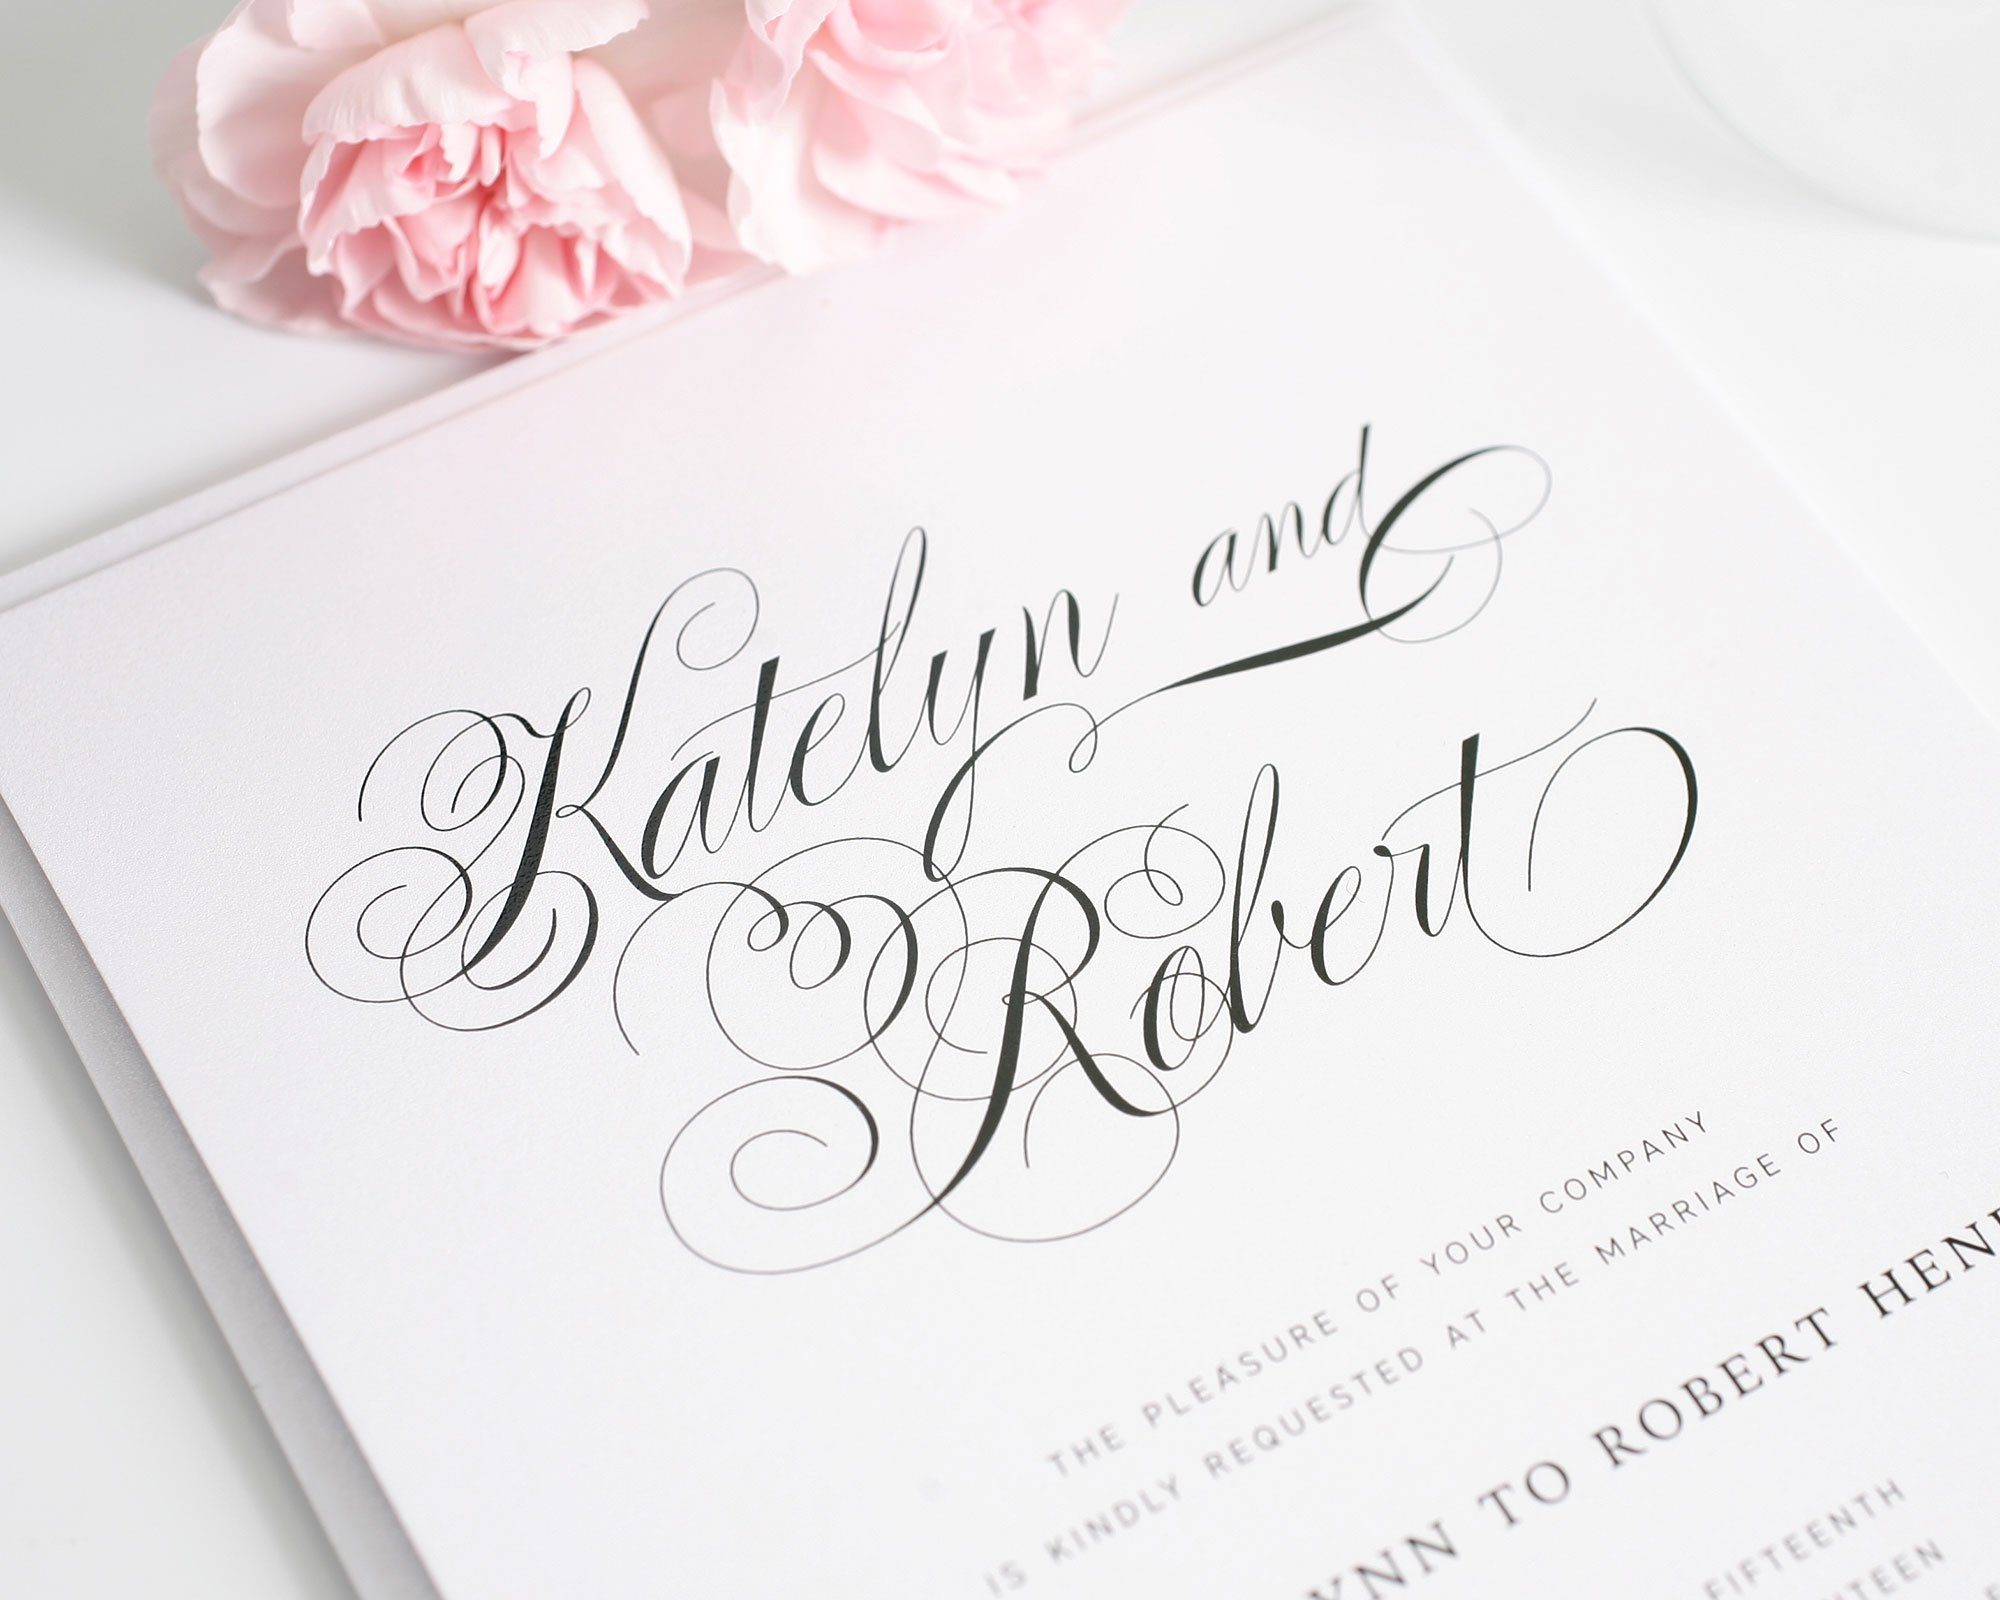 Wedding invitations with southern flare wedding invitations large script wedding invitations monicamarmolfo Image collections